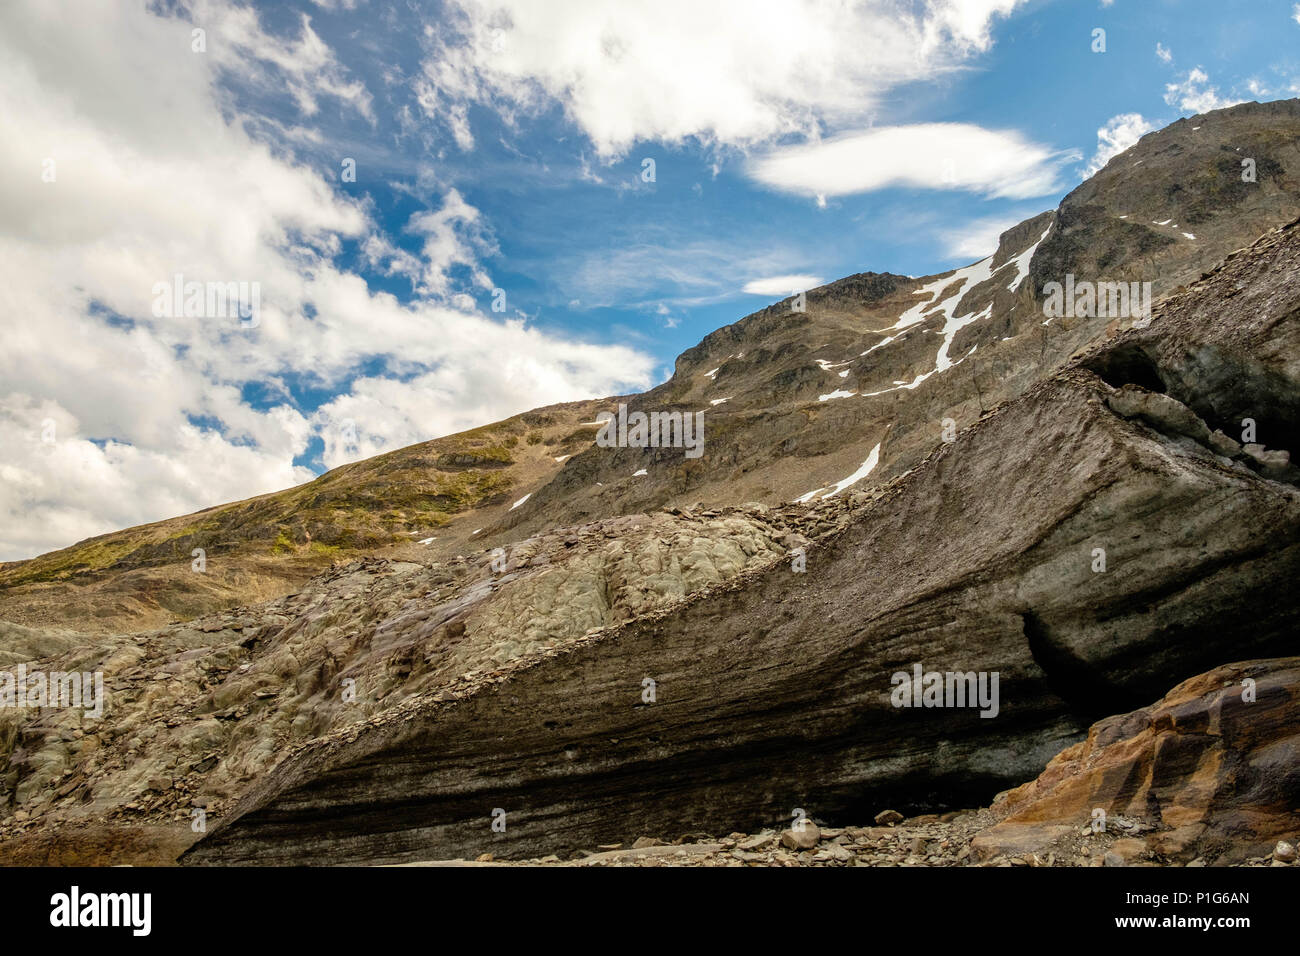 A small cave shows up near the Laguna de los Témpanos, a stunning mountain lake close to Ushuaia, the southernmost city of the world. Stock Photo